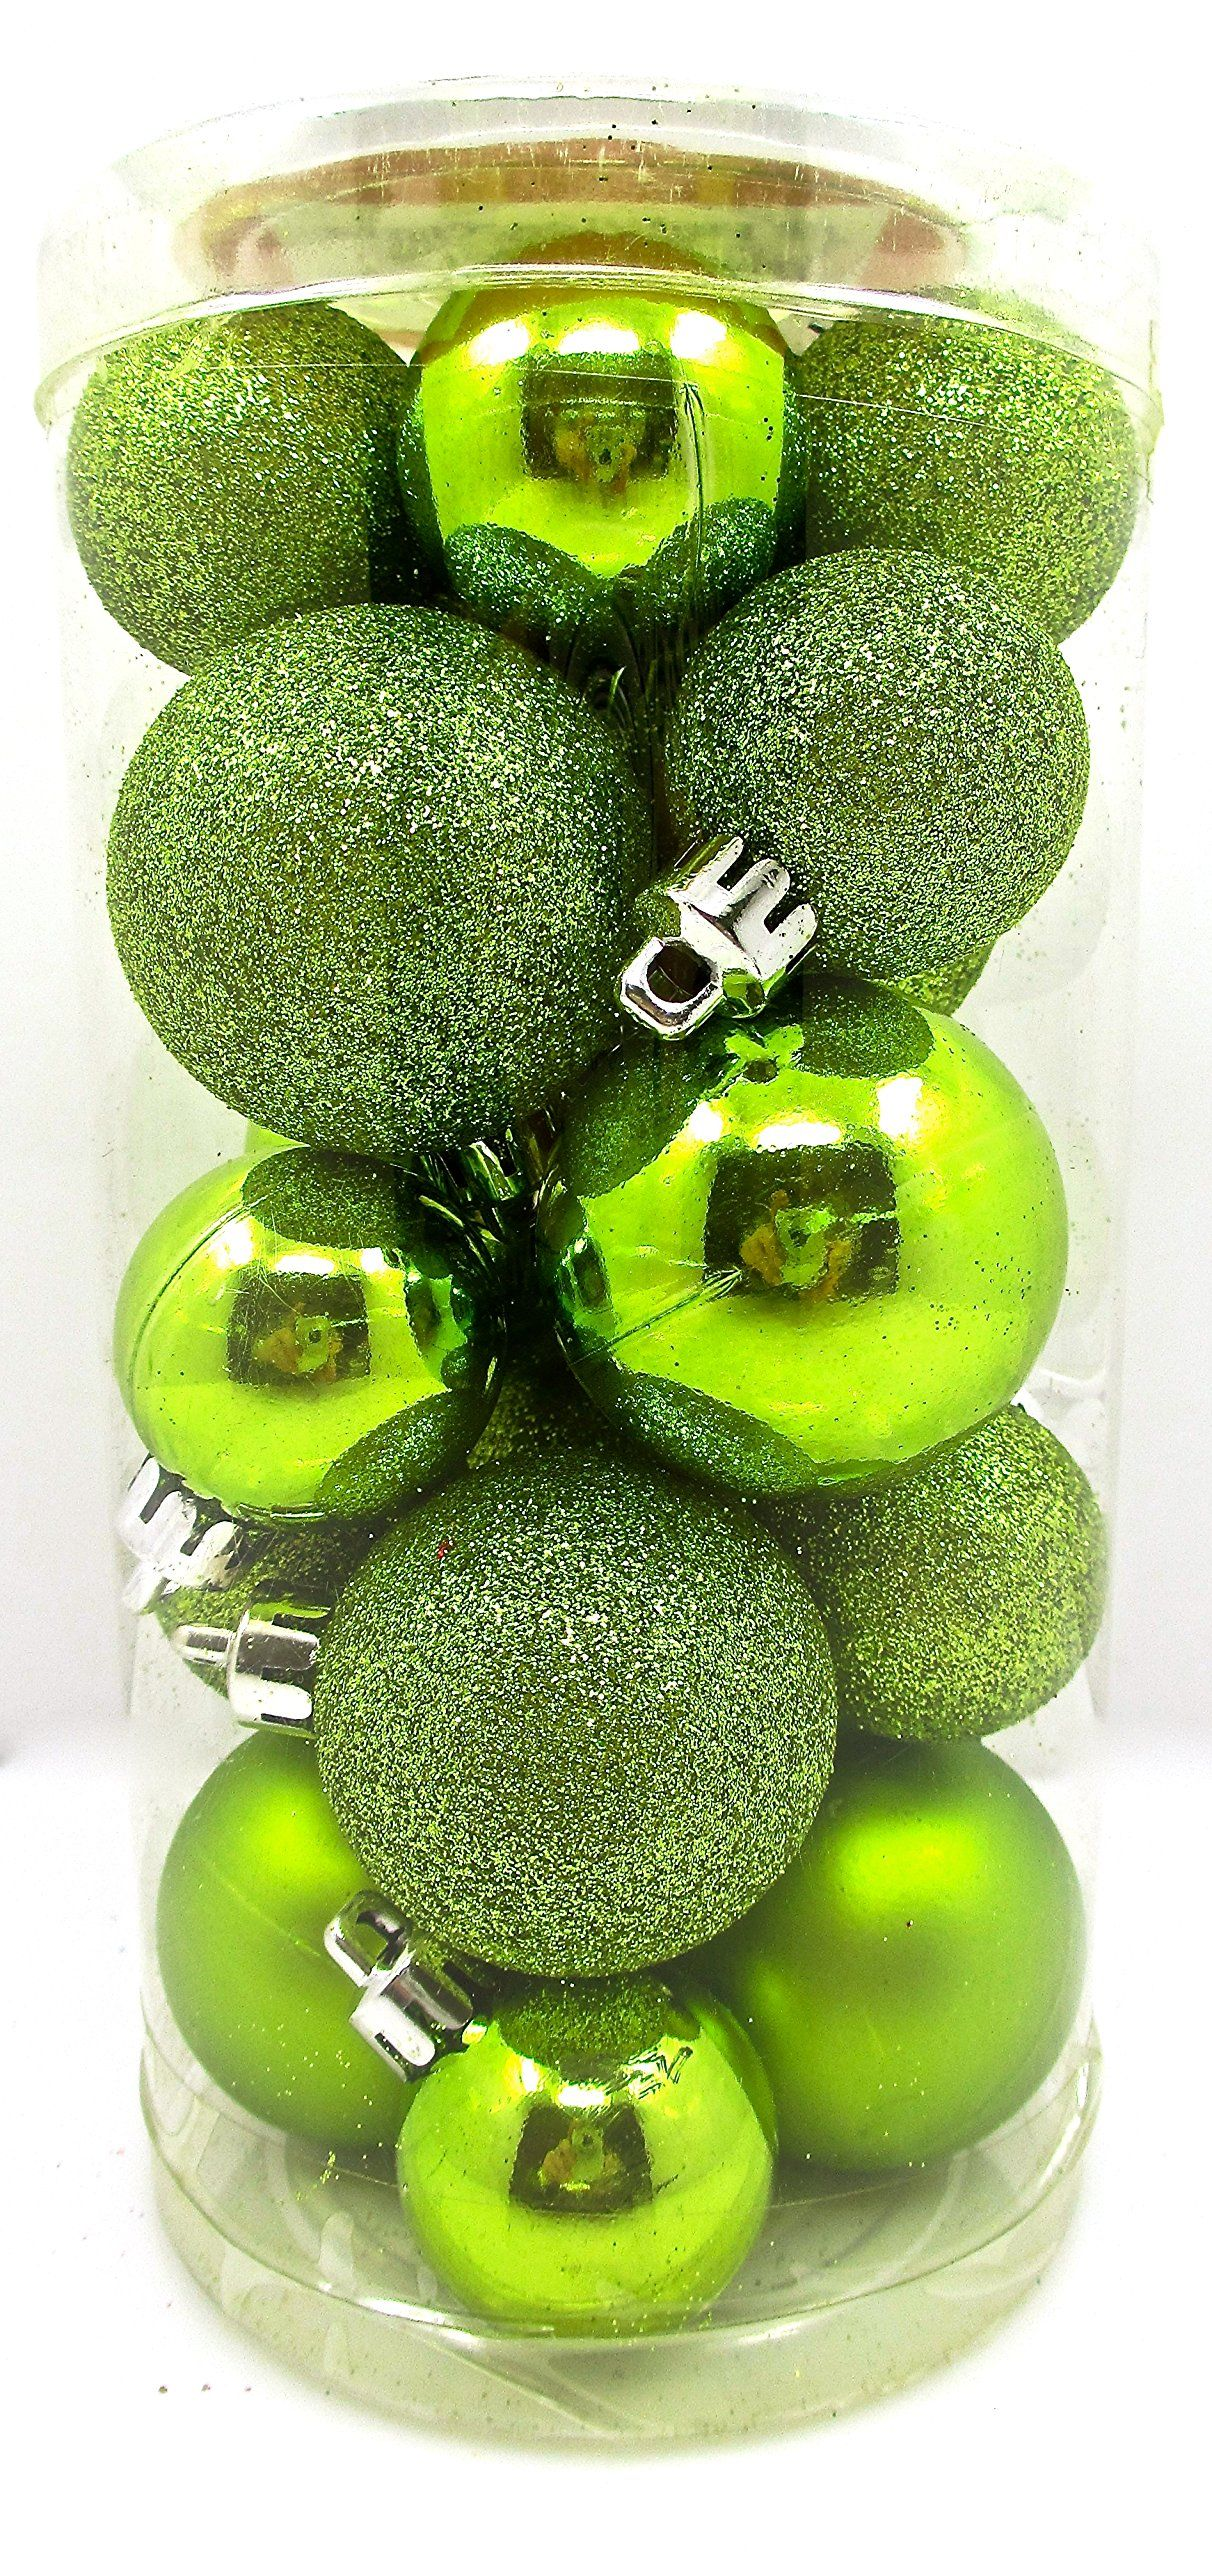 Amazon Com Holiday Time Mini Ornament Set Shatterproof Shiny Bulbs With Glitter 20x Lime Green Green Christmas Decorations Mini Ornaments Ornament Set